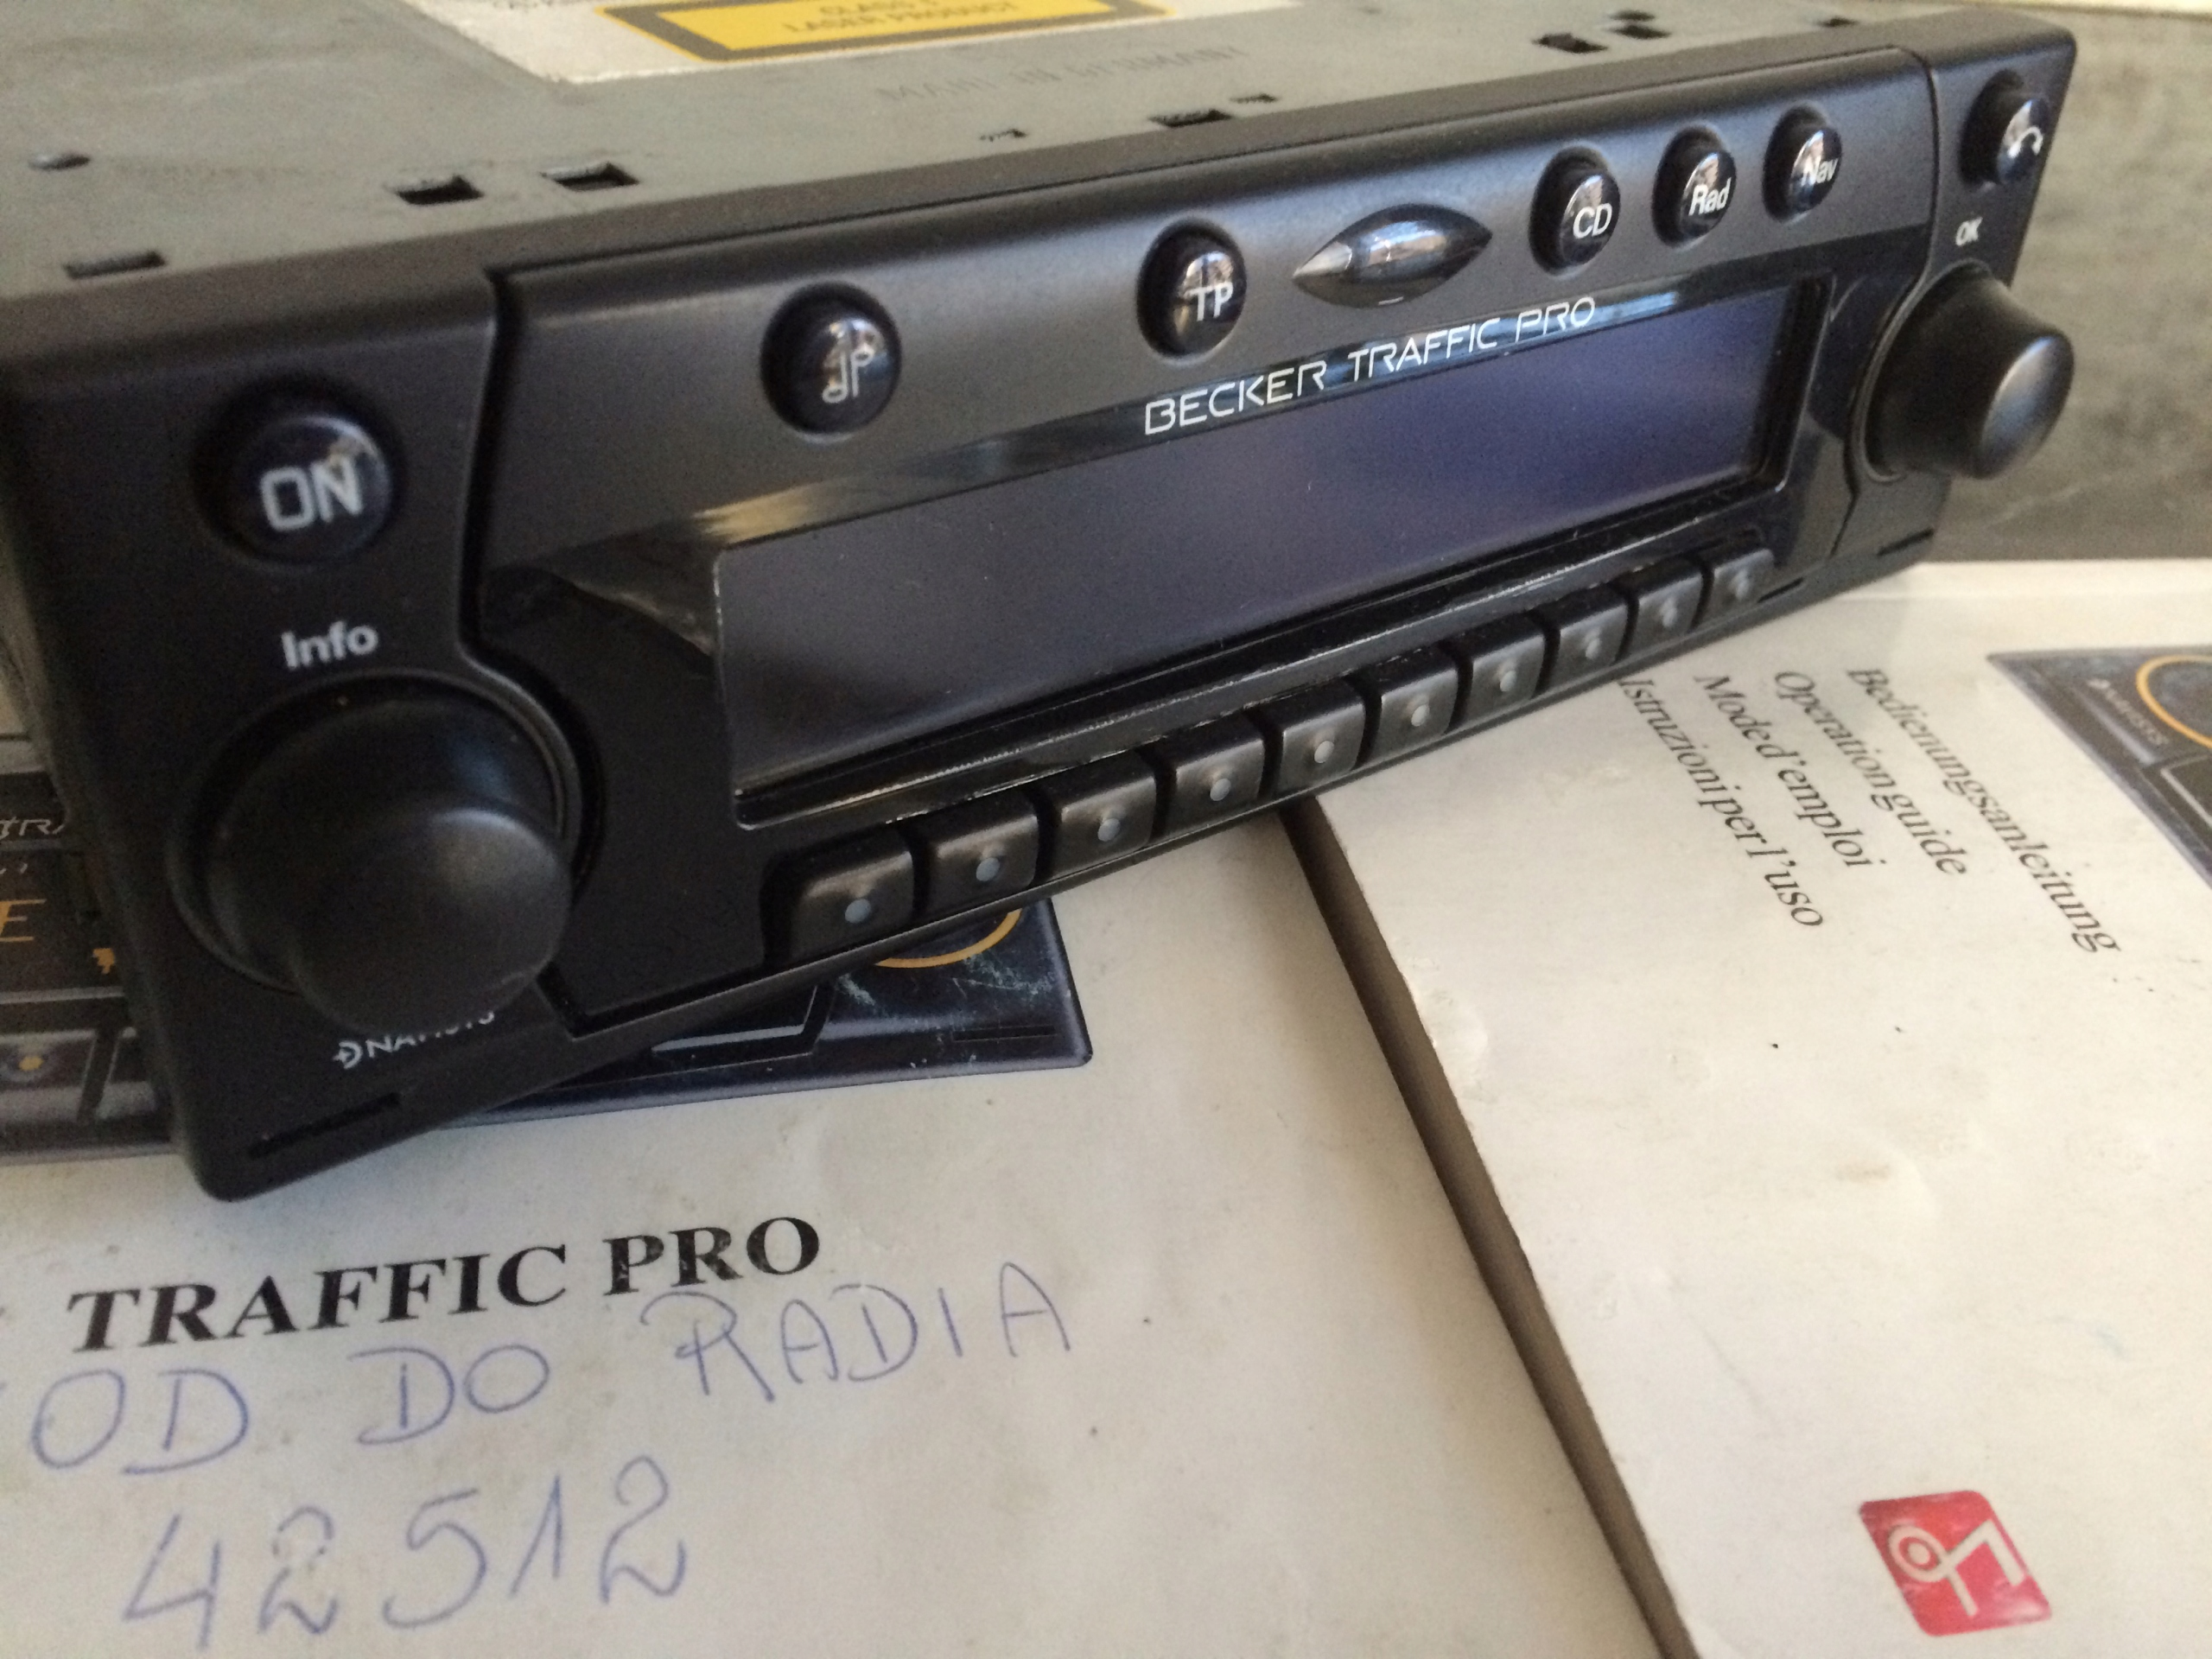 radio Becker traffic Pro do bmw e36 i innych